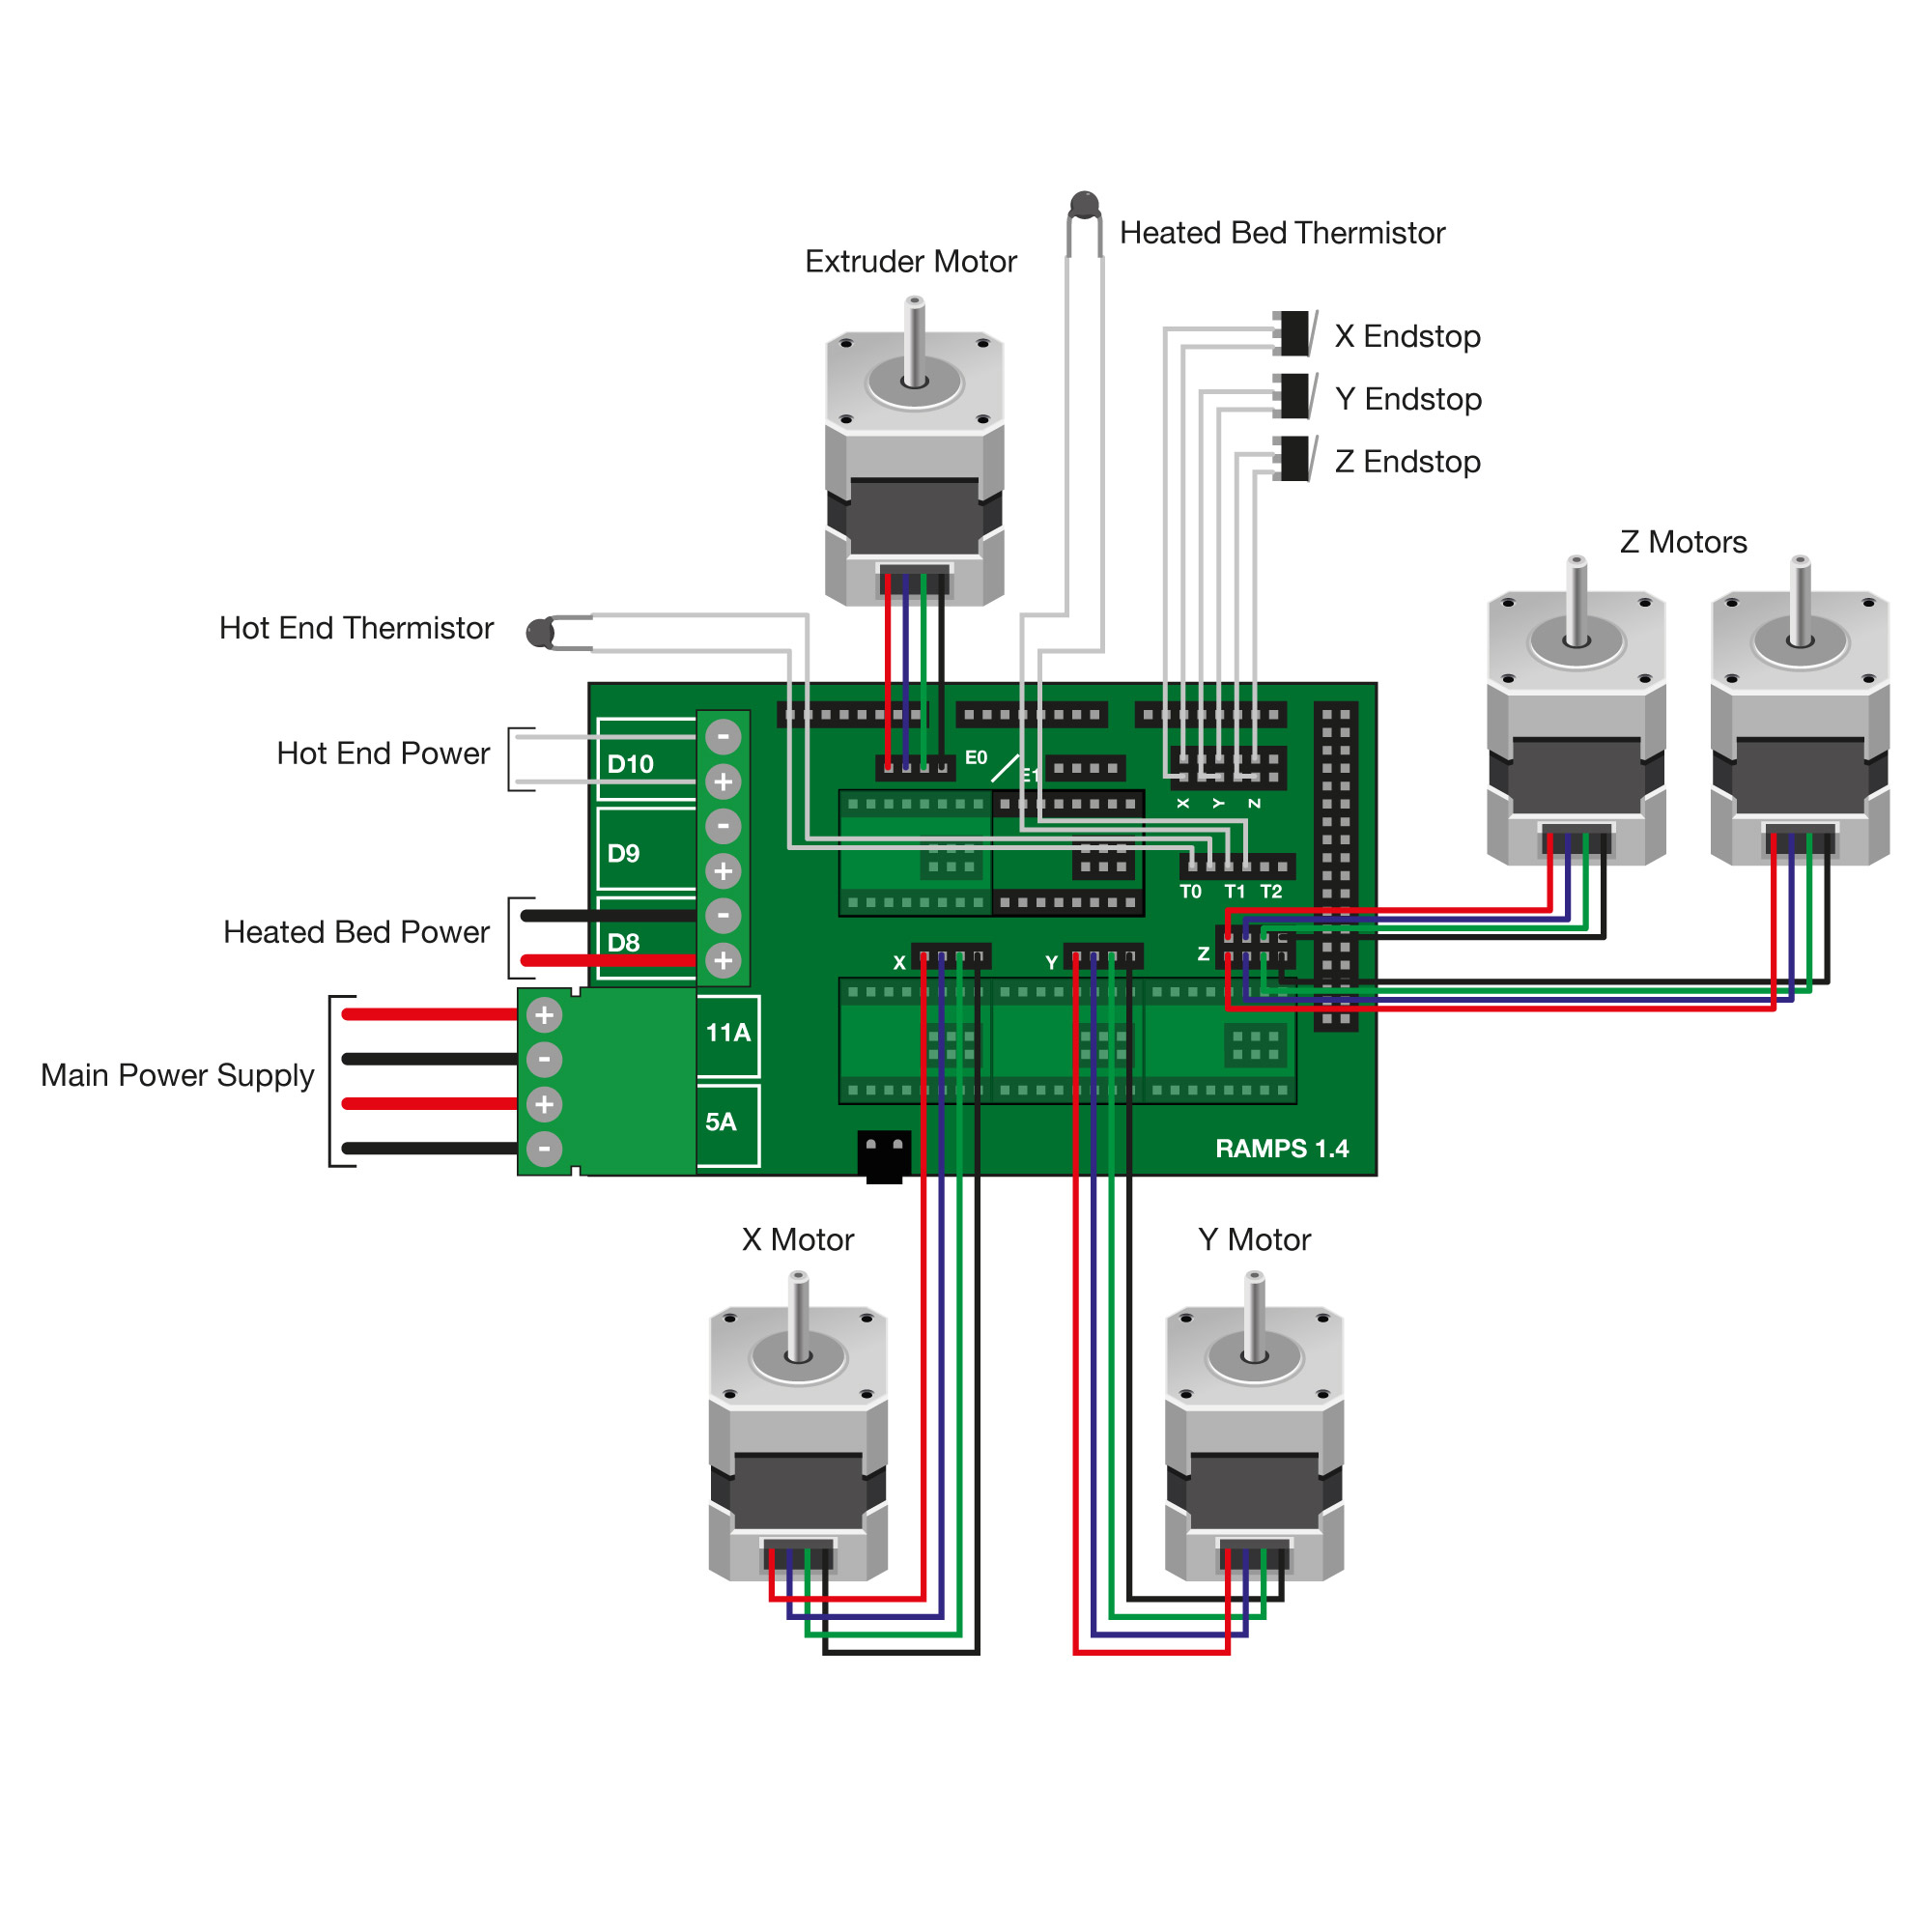 15470352354_3baf2e7bba_o reprap wiring diagram nema 17 wiring diagram \u2022 wiring diagrams j Inductive Sensor Schematic at gsmportal.co